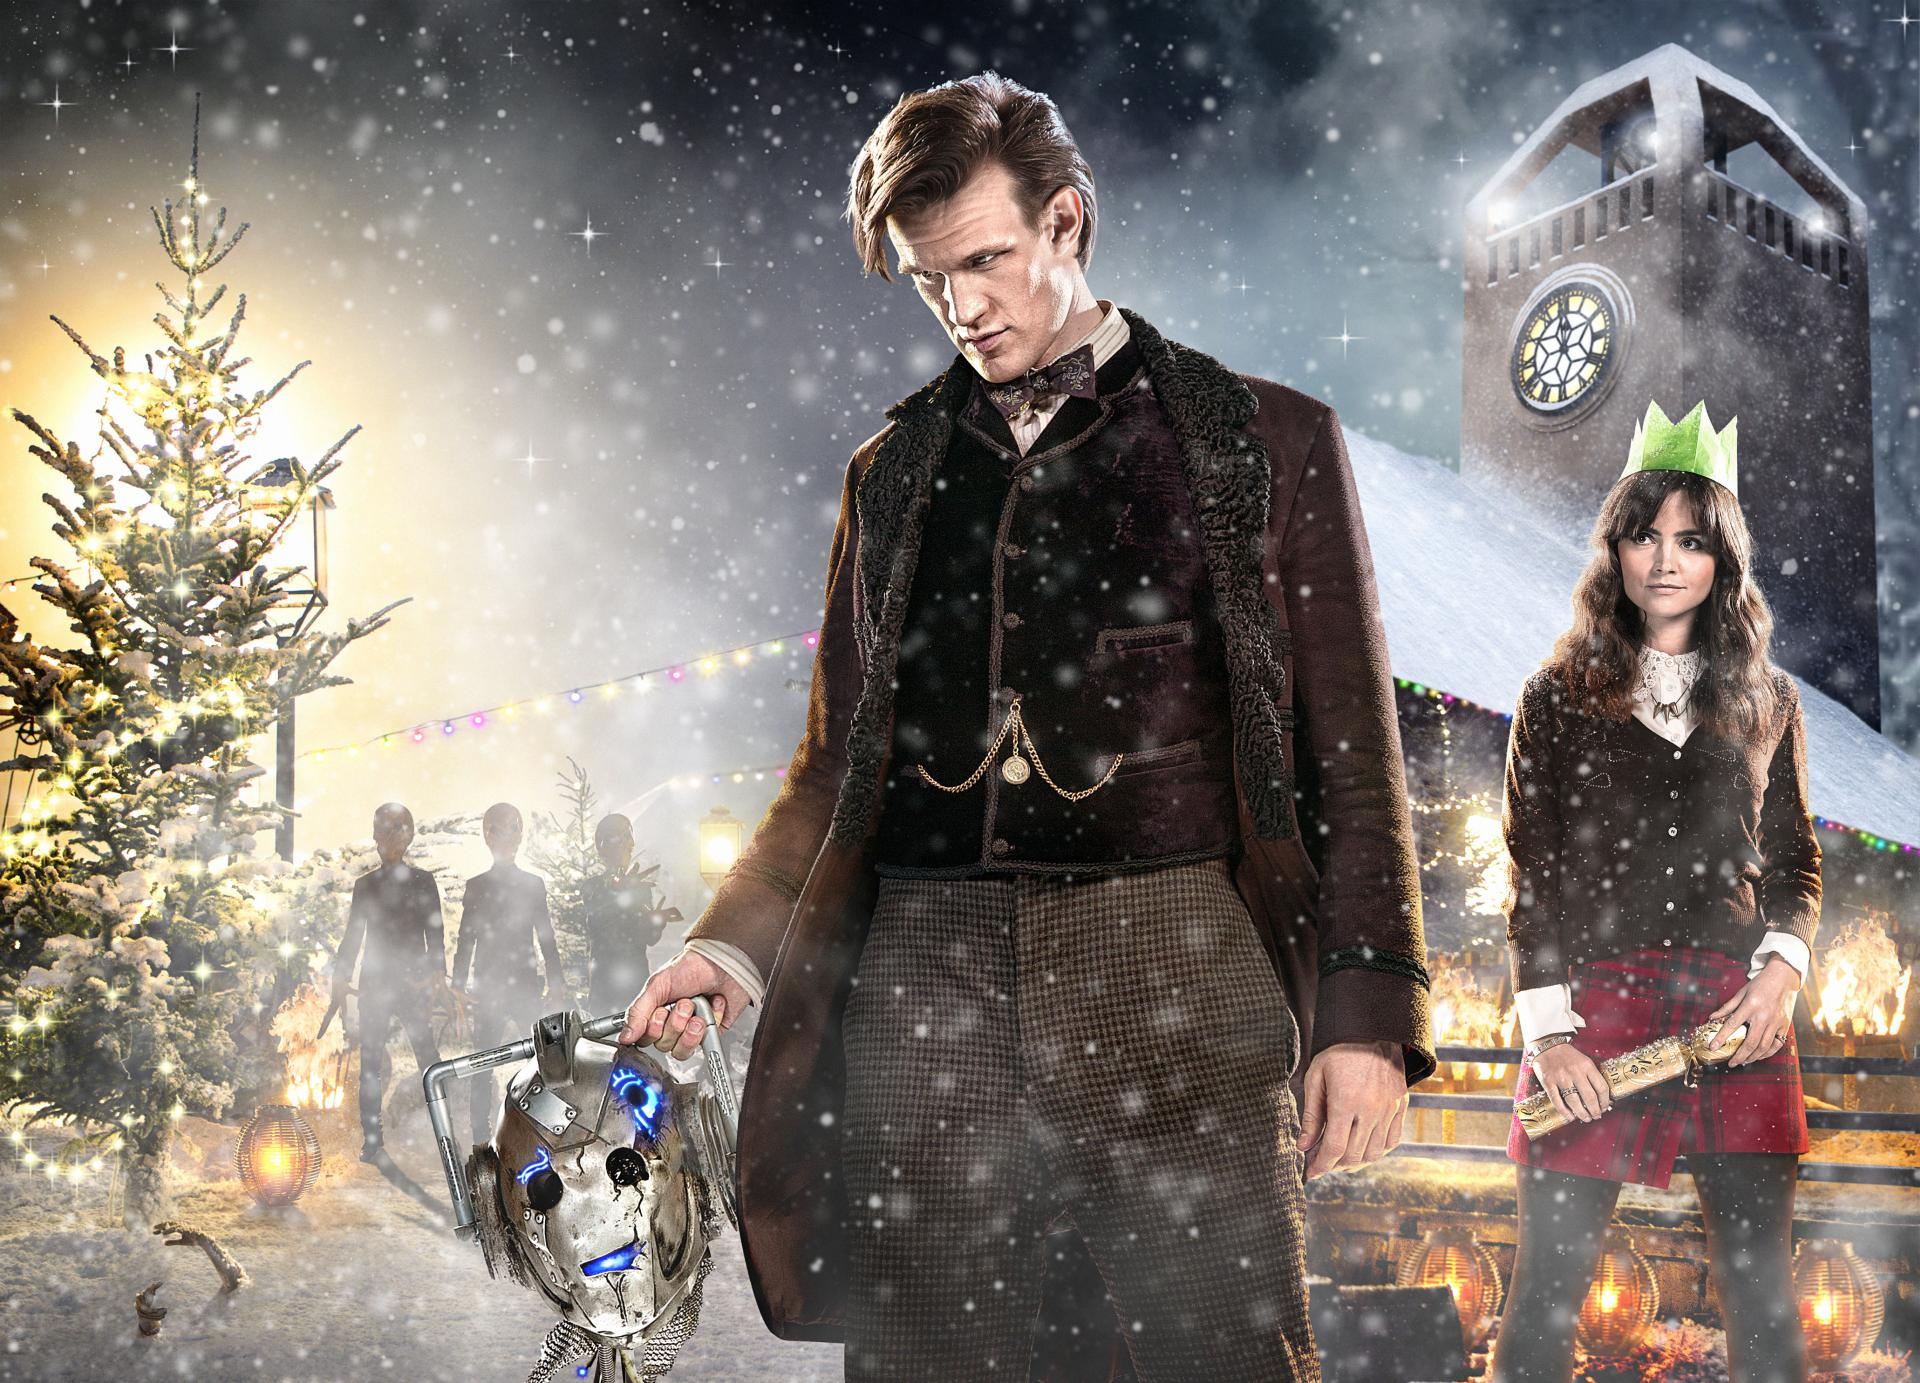 The Time of The Doctor - Promotional Image (Credit: BBC/Ray Burmiston)